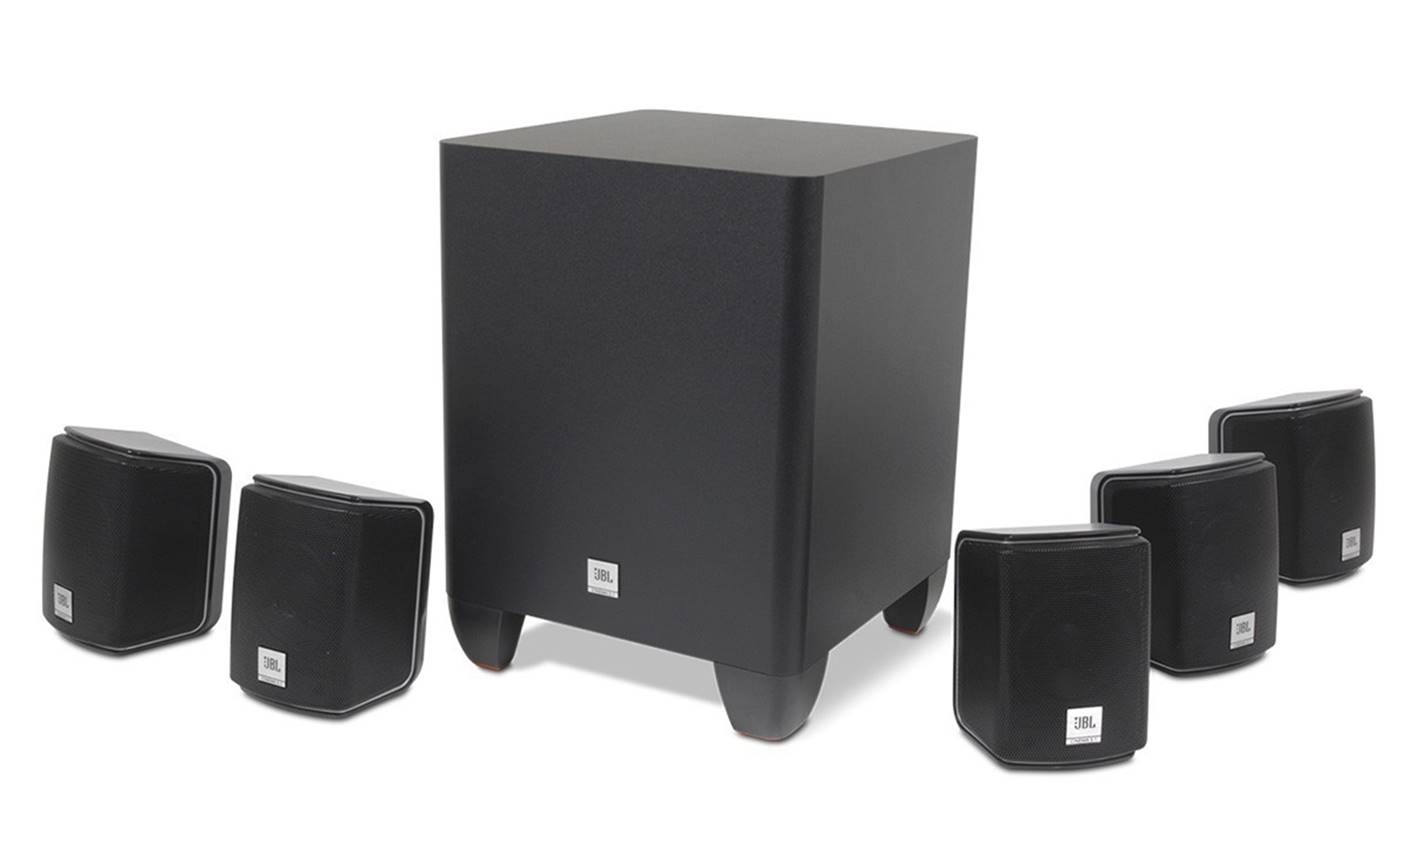 JBL Cinema 510 Home Theater System